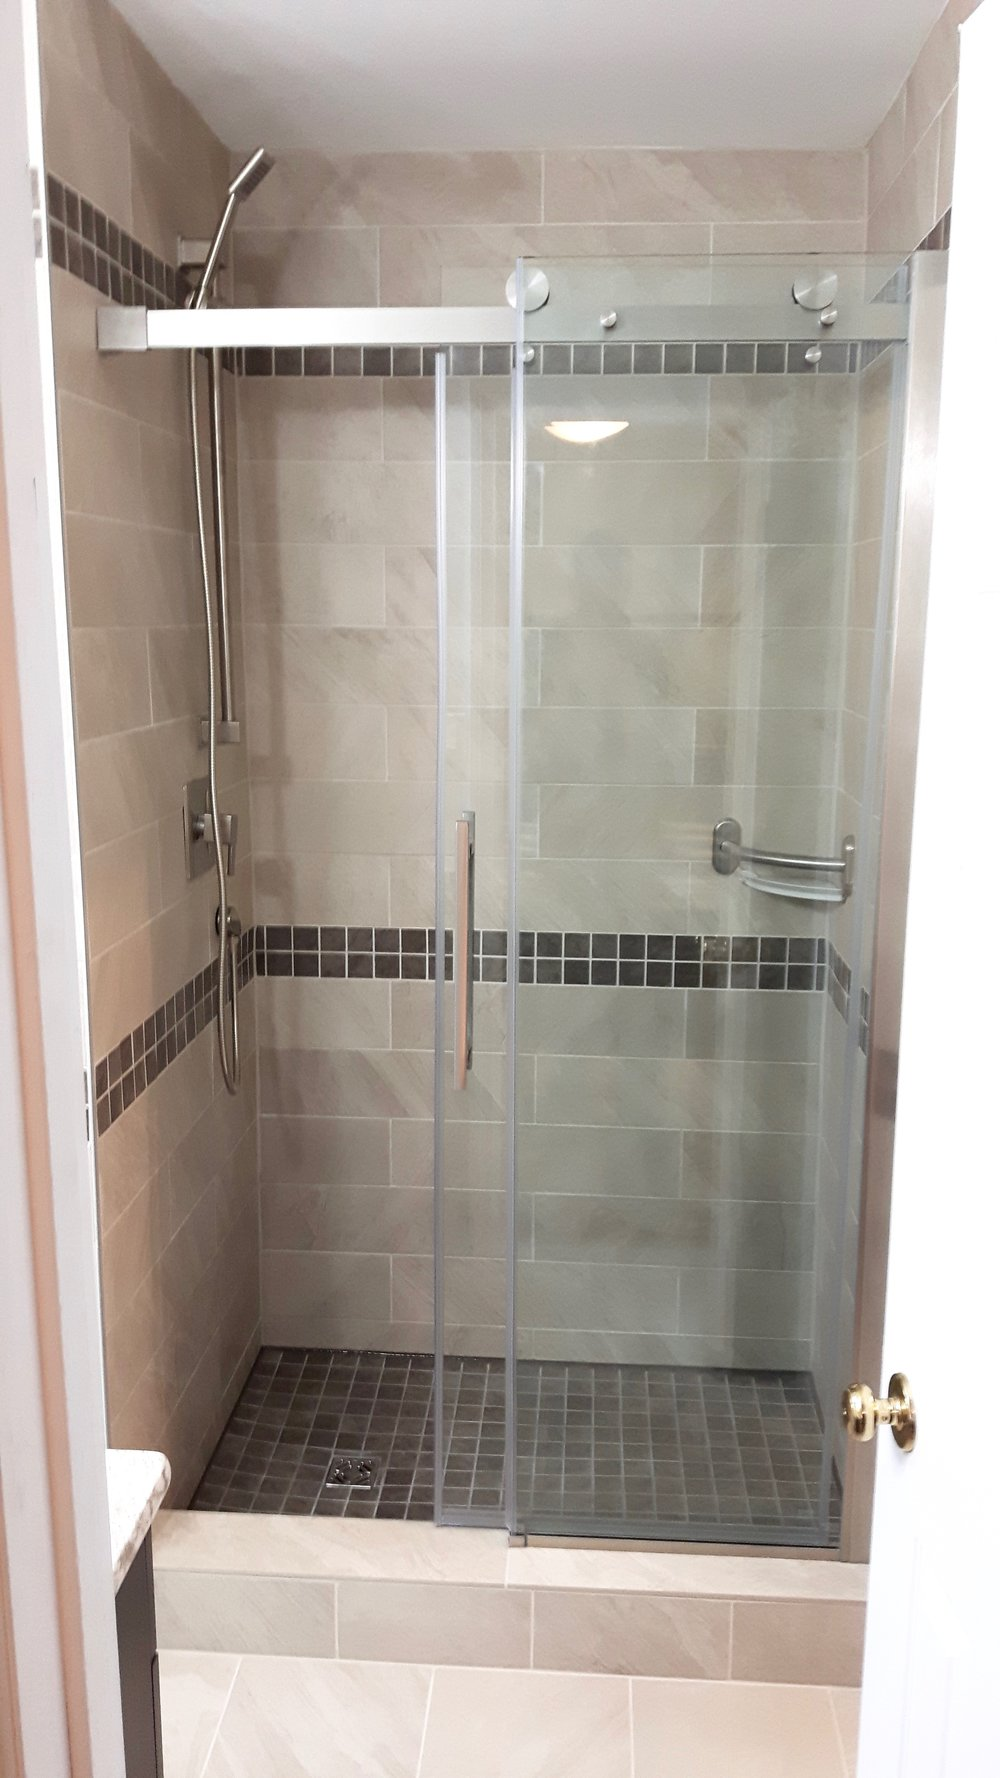 Shower stall with built-in bar/storage shelf